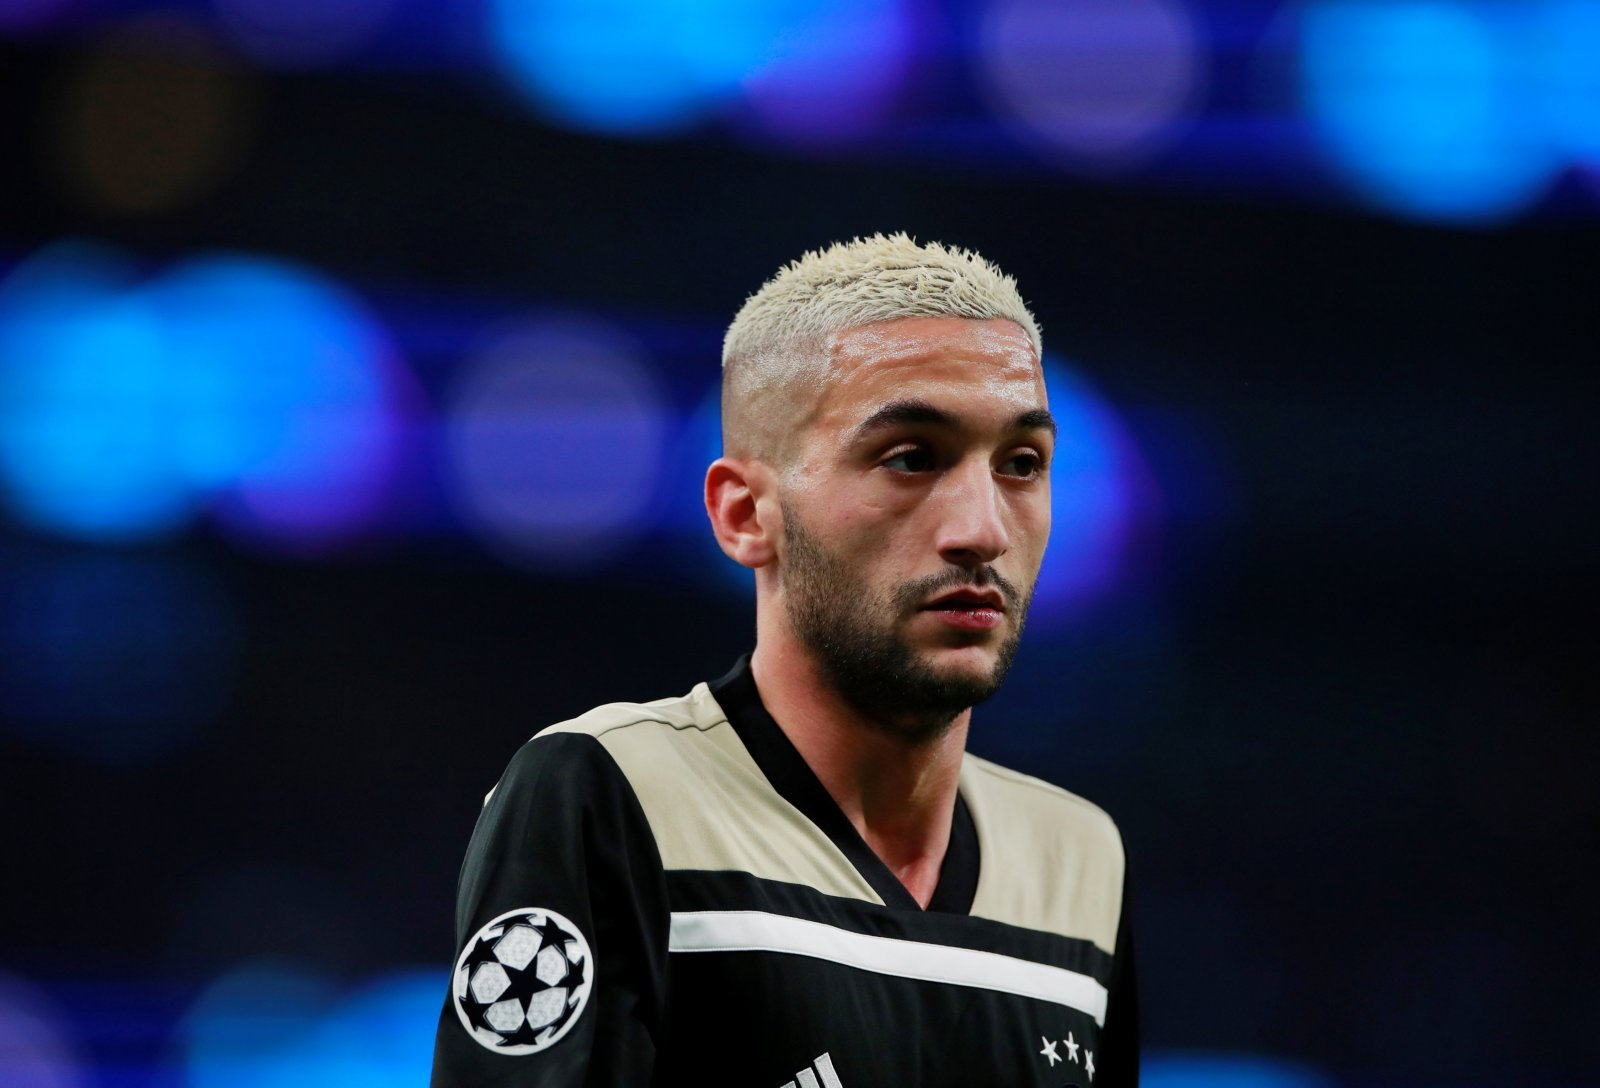 Tottenham: Some supporters think Hakim Ziyech is too good for them as a winter signing